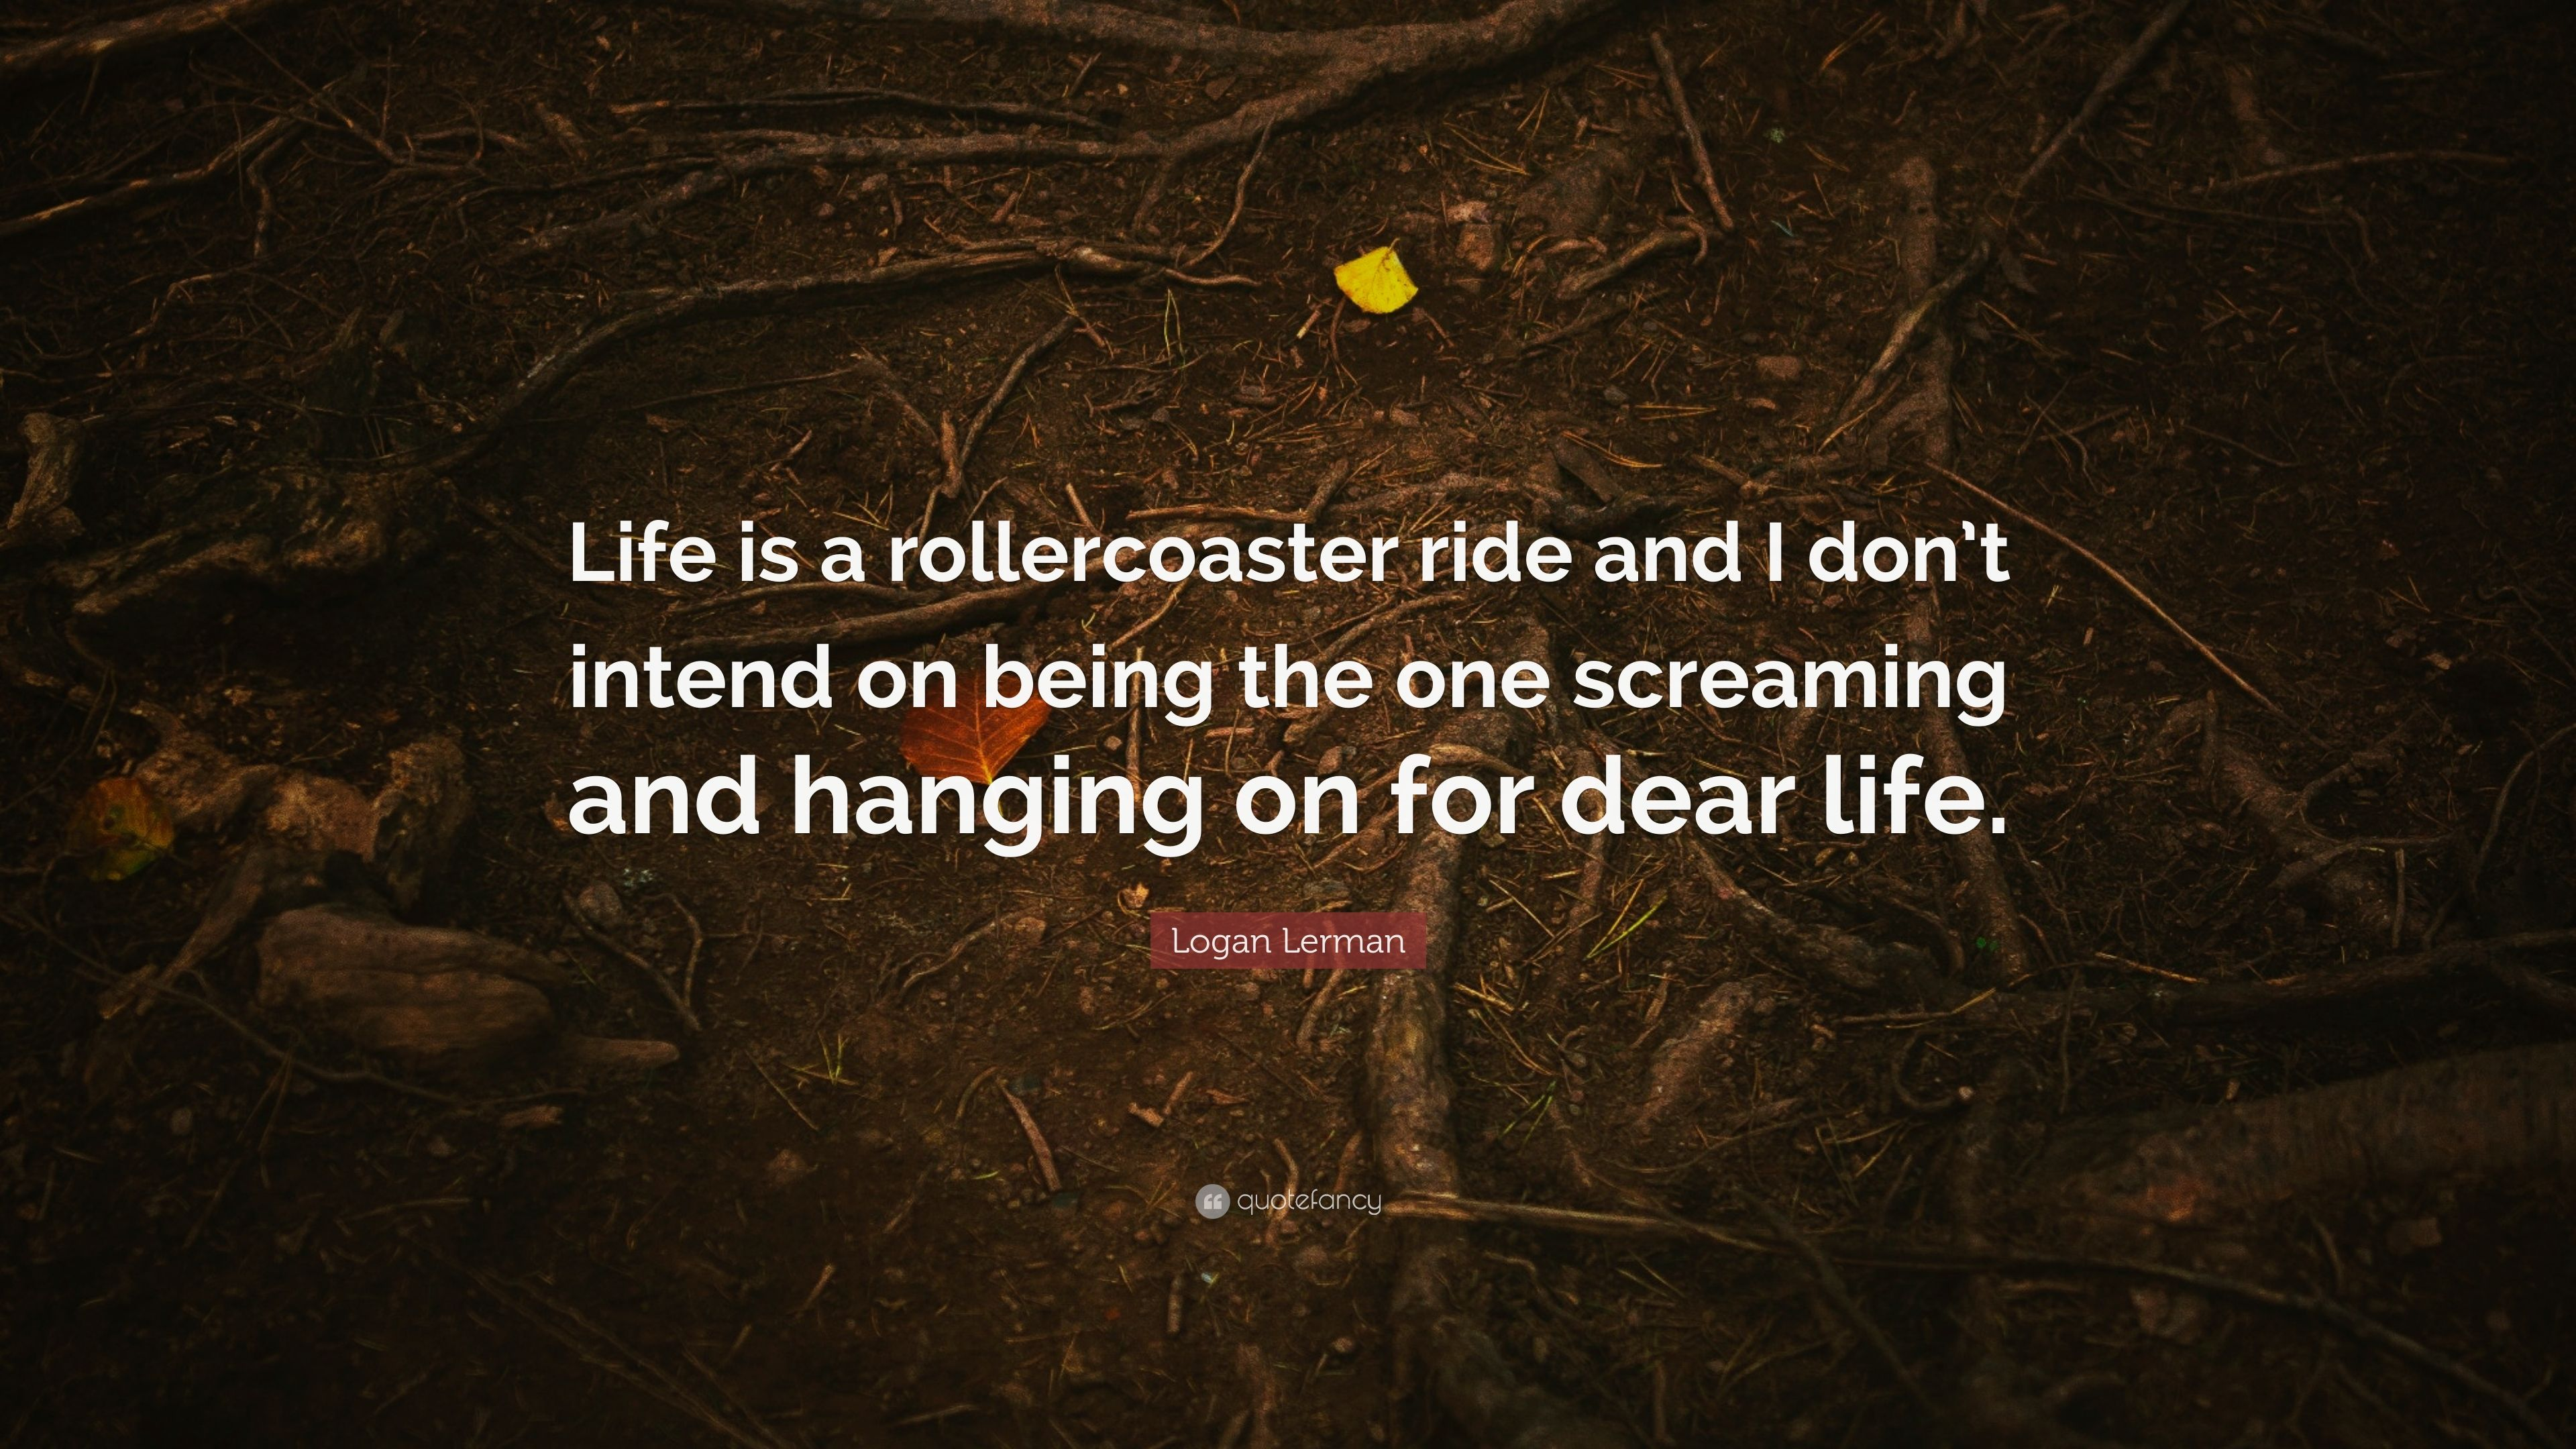 Logan Lerman Quote Life Is A Rollercoaster Ride And I Dont Intend